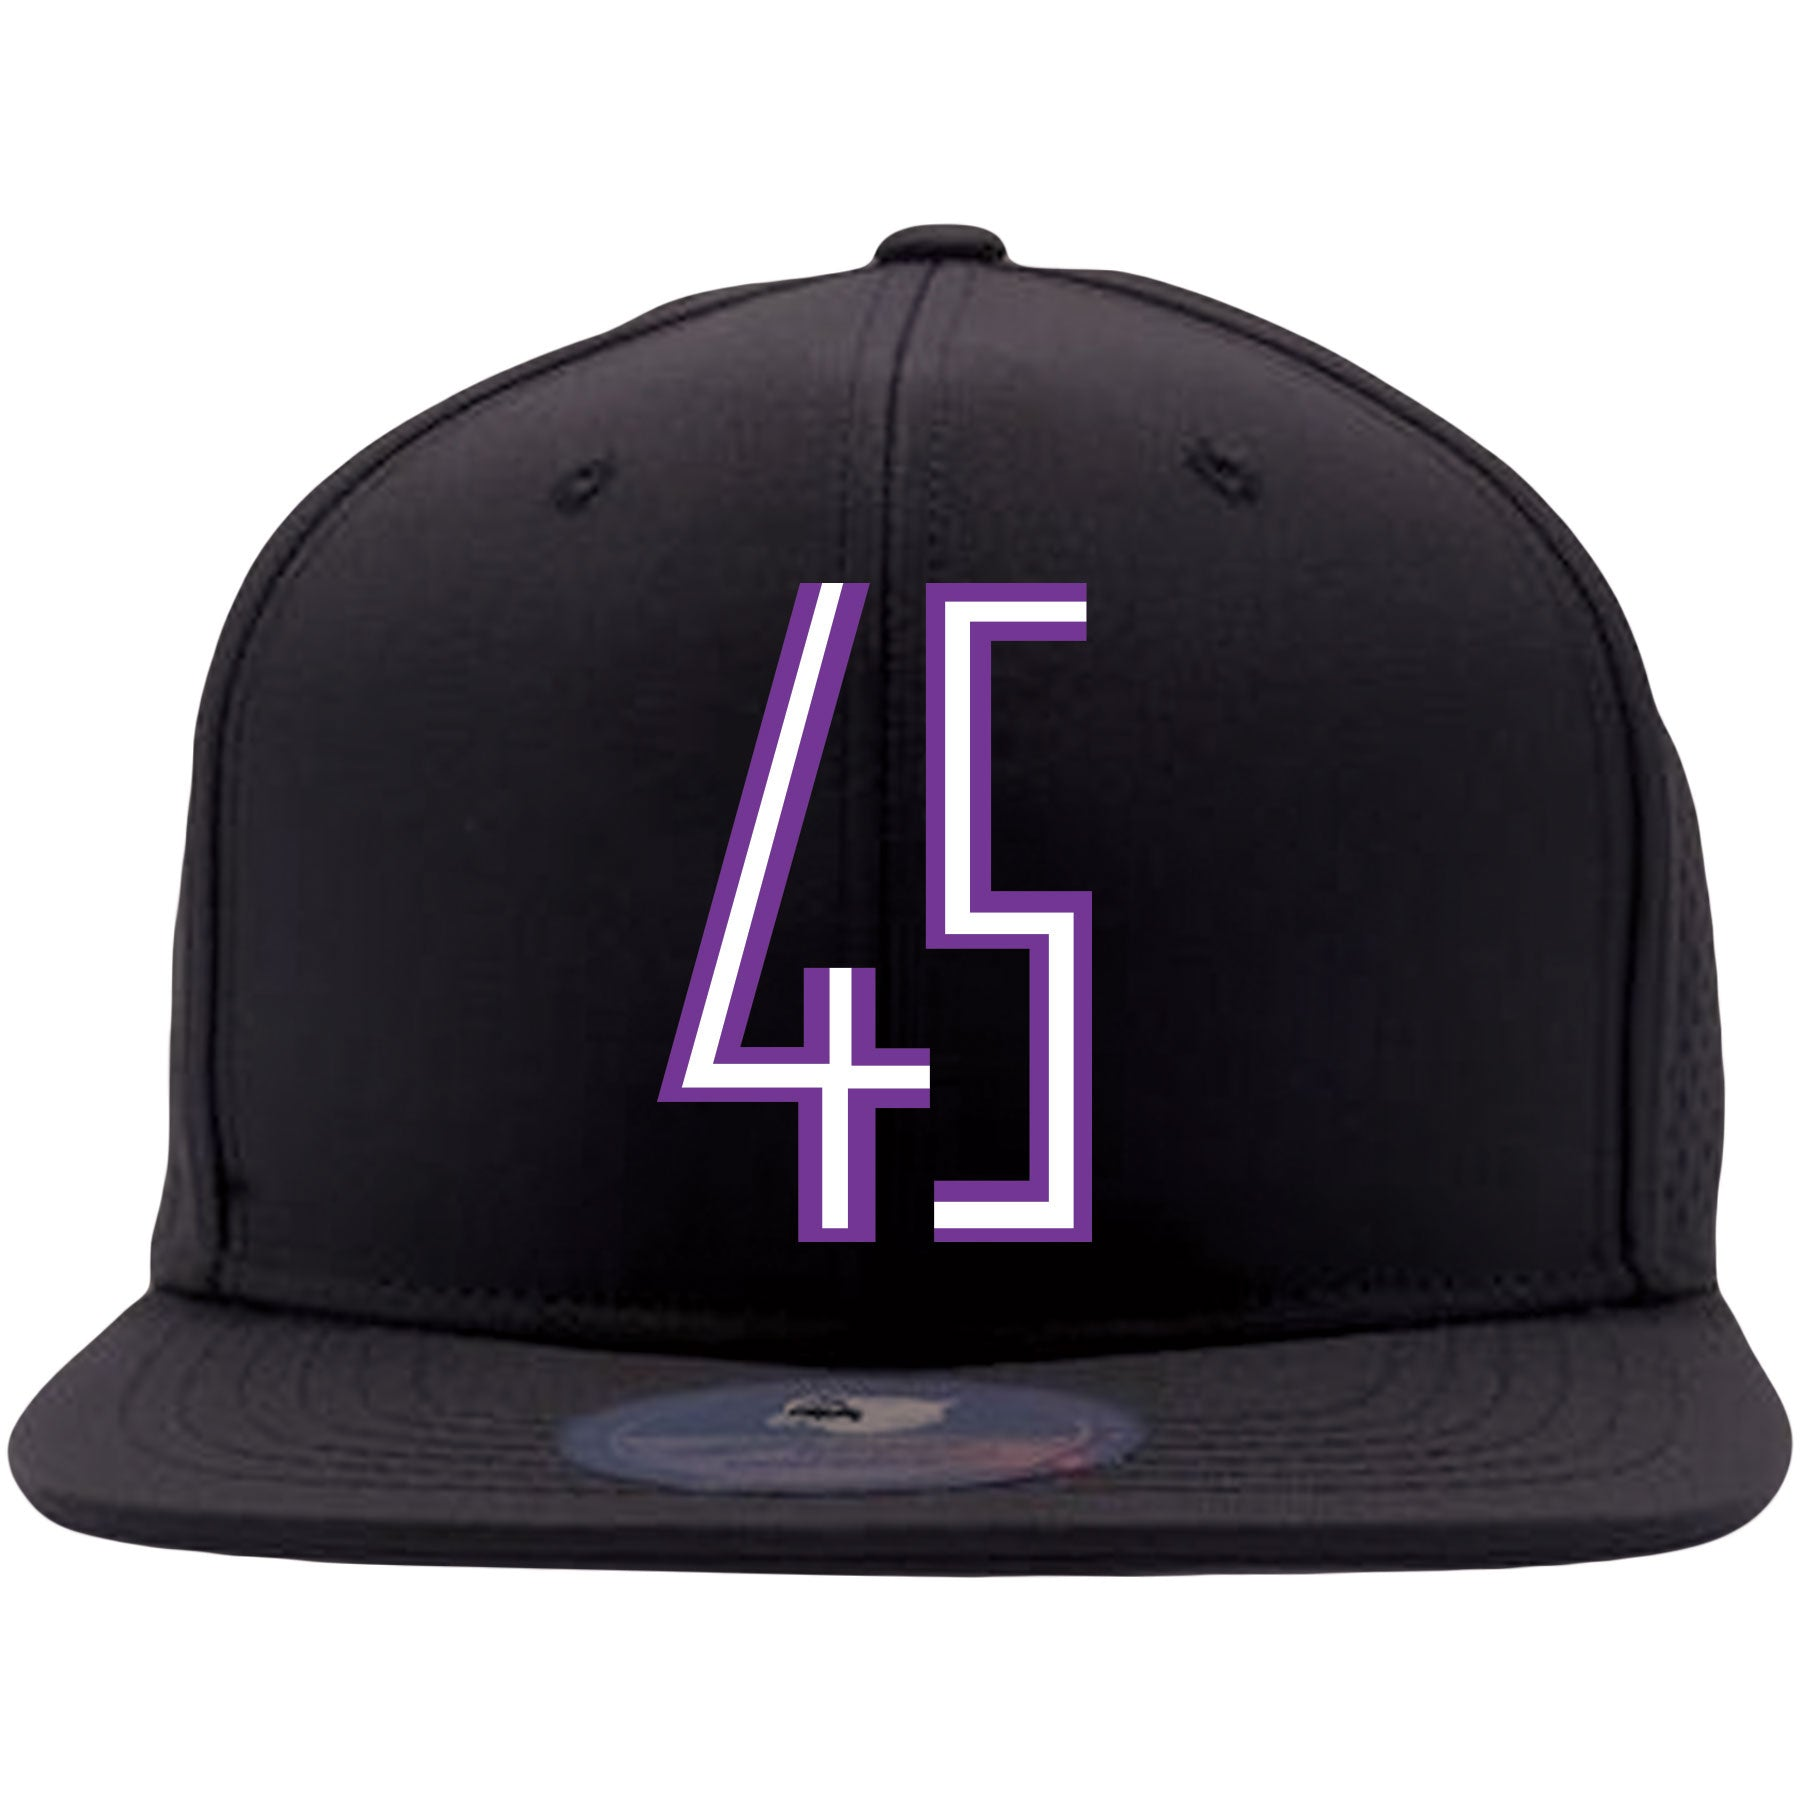 3cf1d290f54 ... Embroidered on the front of the Jordan 11 Concord 45 sneaker matching snapback  hat is the ...